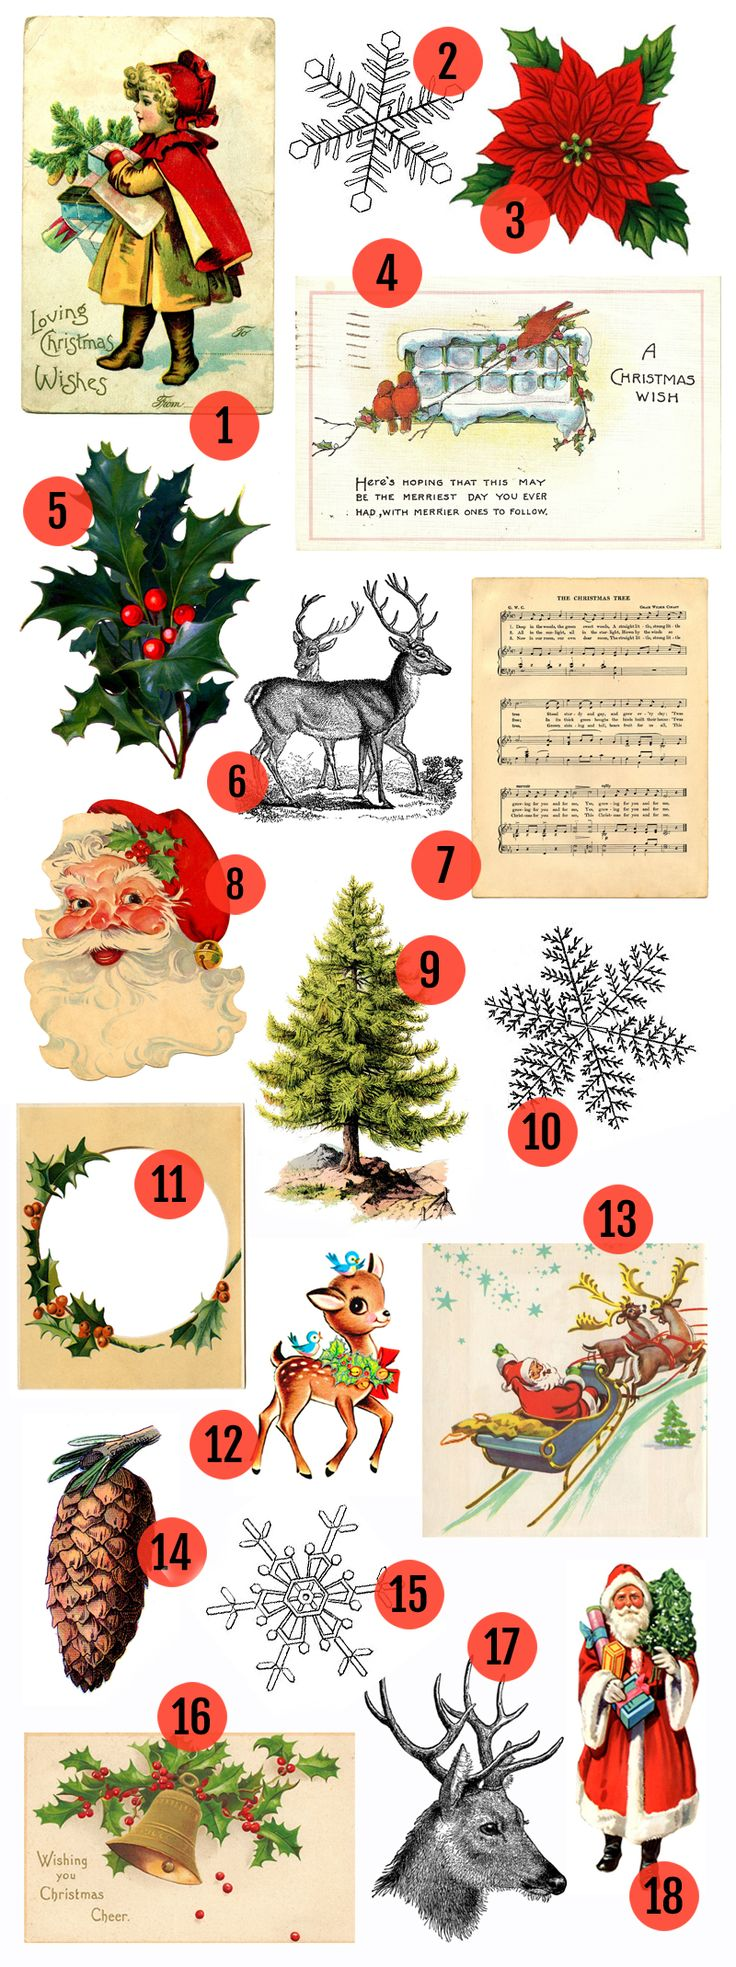 17 Best ideas about Free Christmas Clip Art on Pinterest.